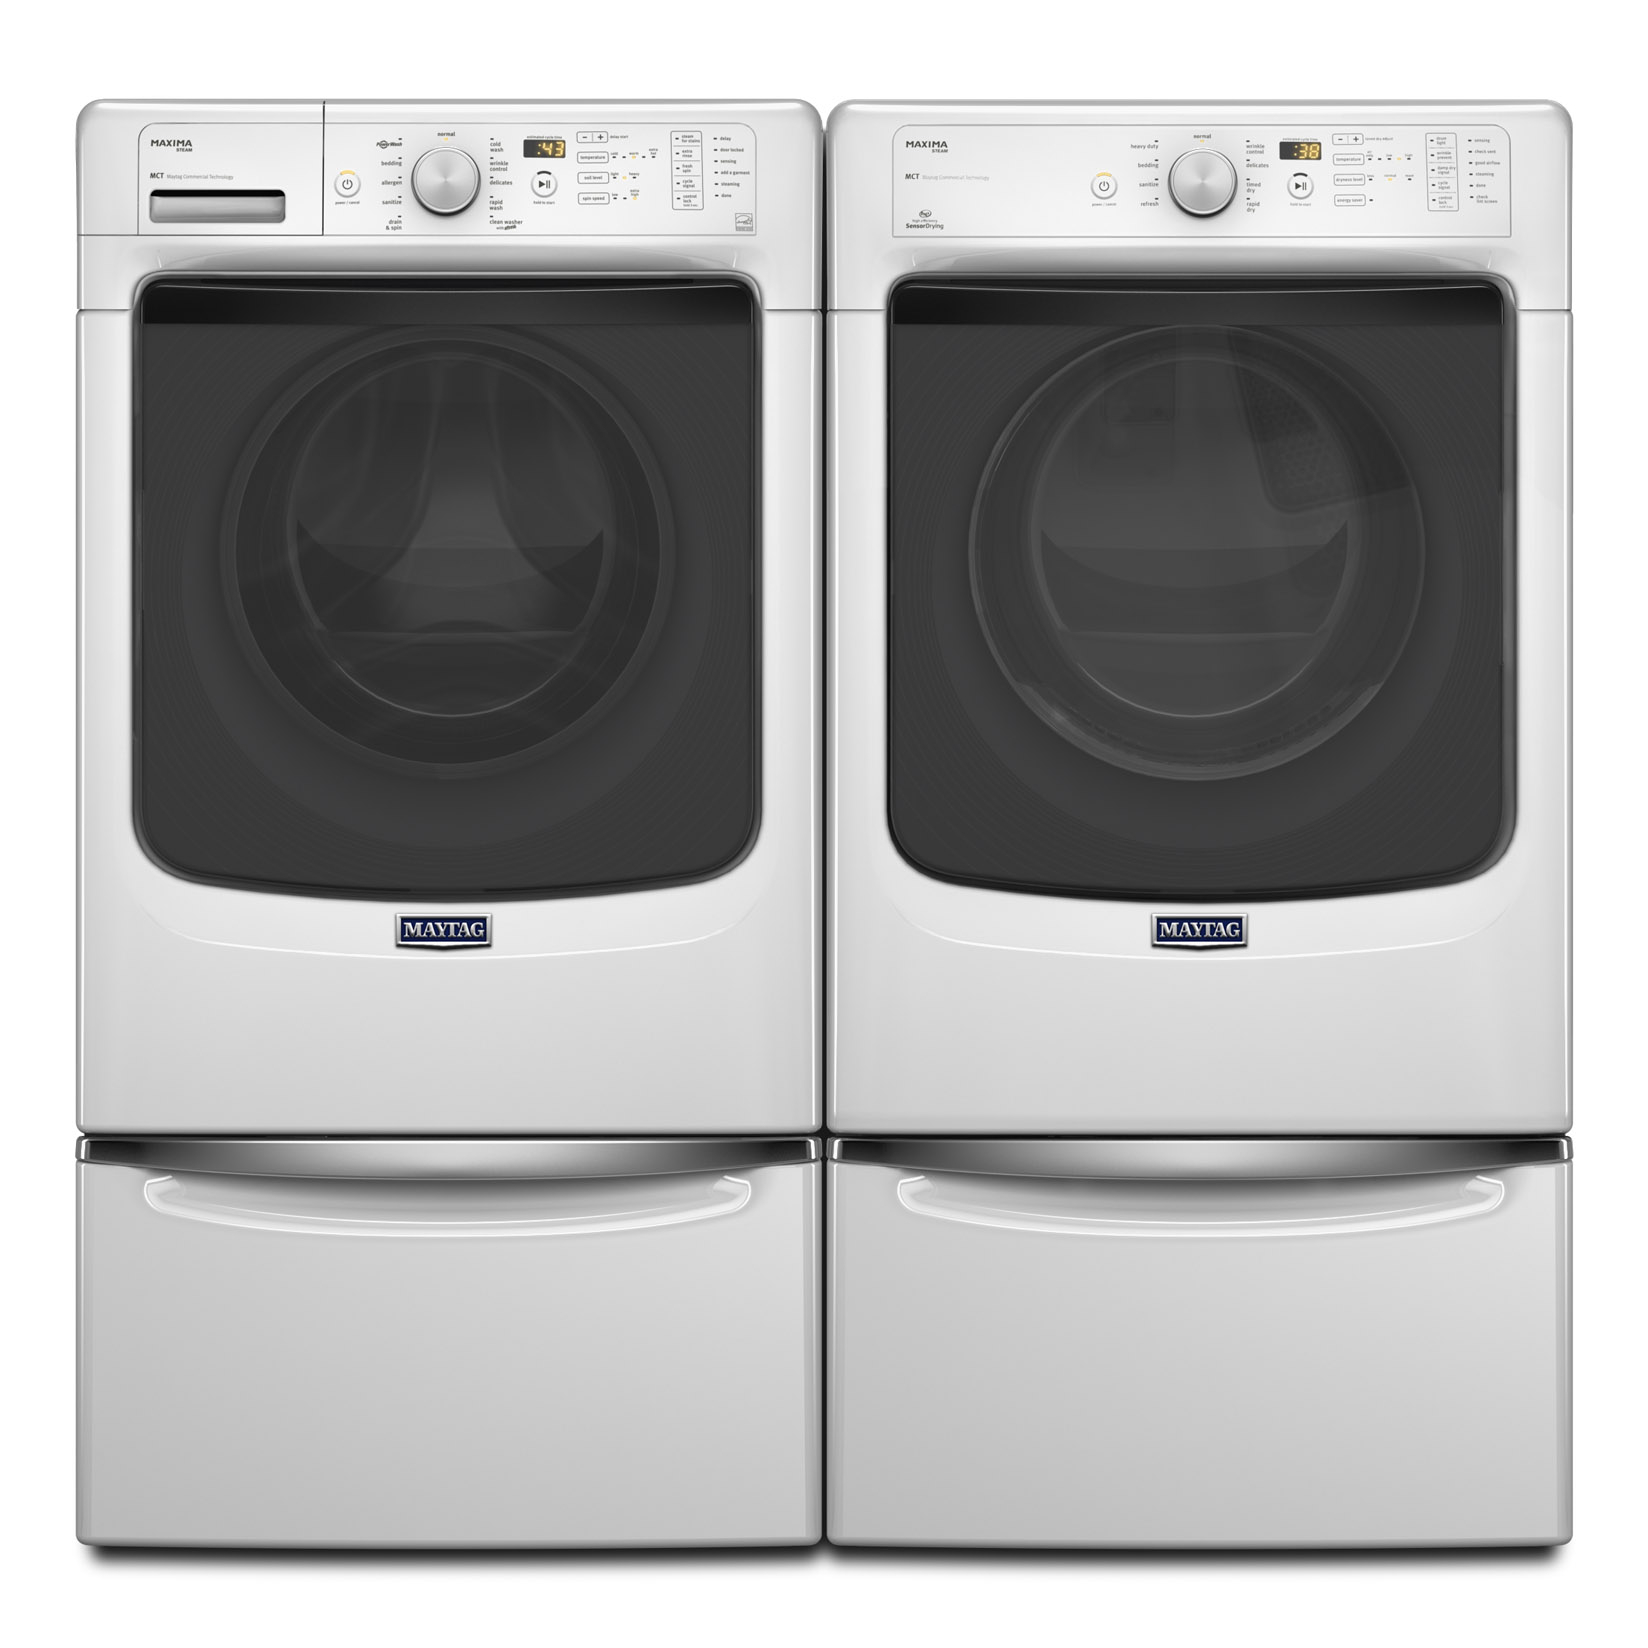 Maytag MHW5100DW 4.5 cu. ft. Maxima® Front-Load Washer w/ Advanced Vibration Control - White